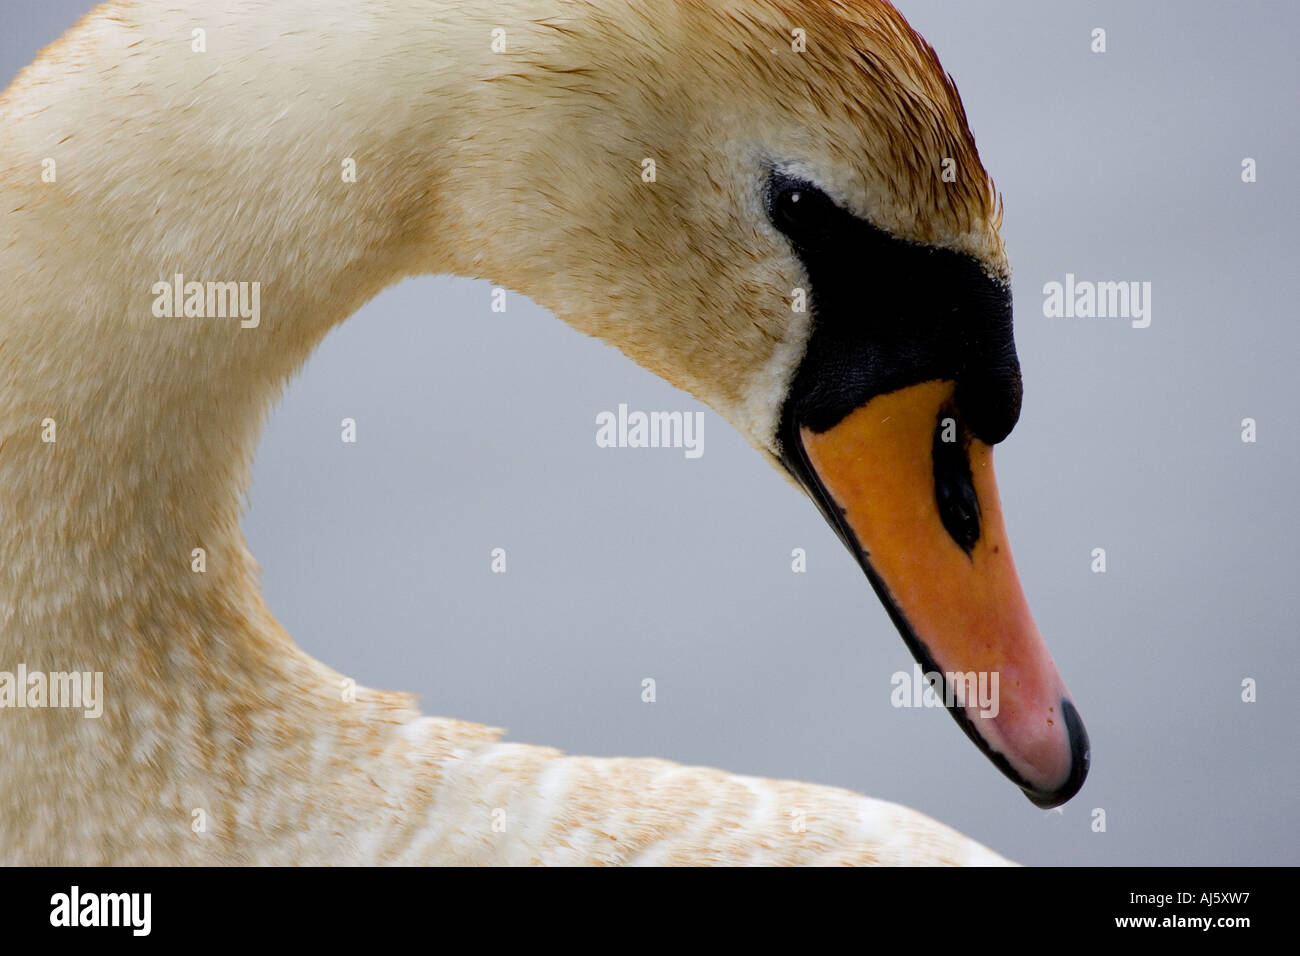 Mute swan in close-up - Stock Image